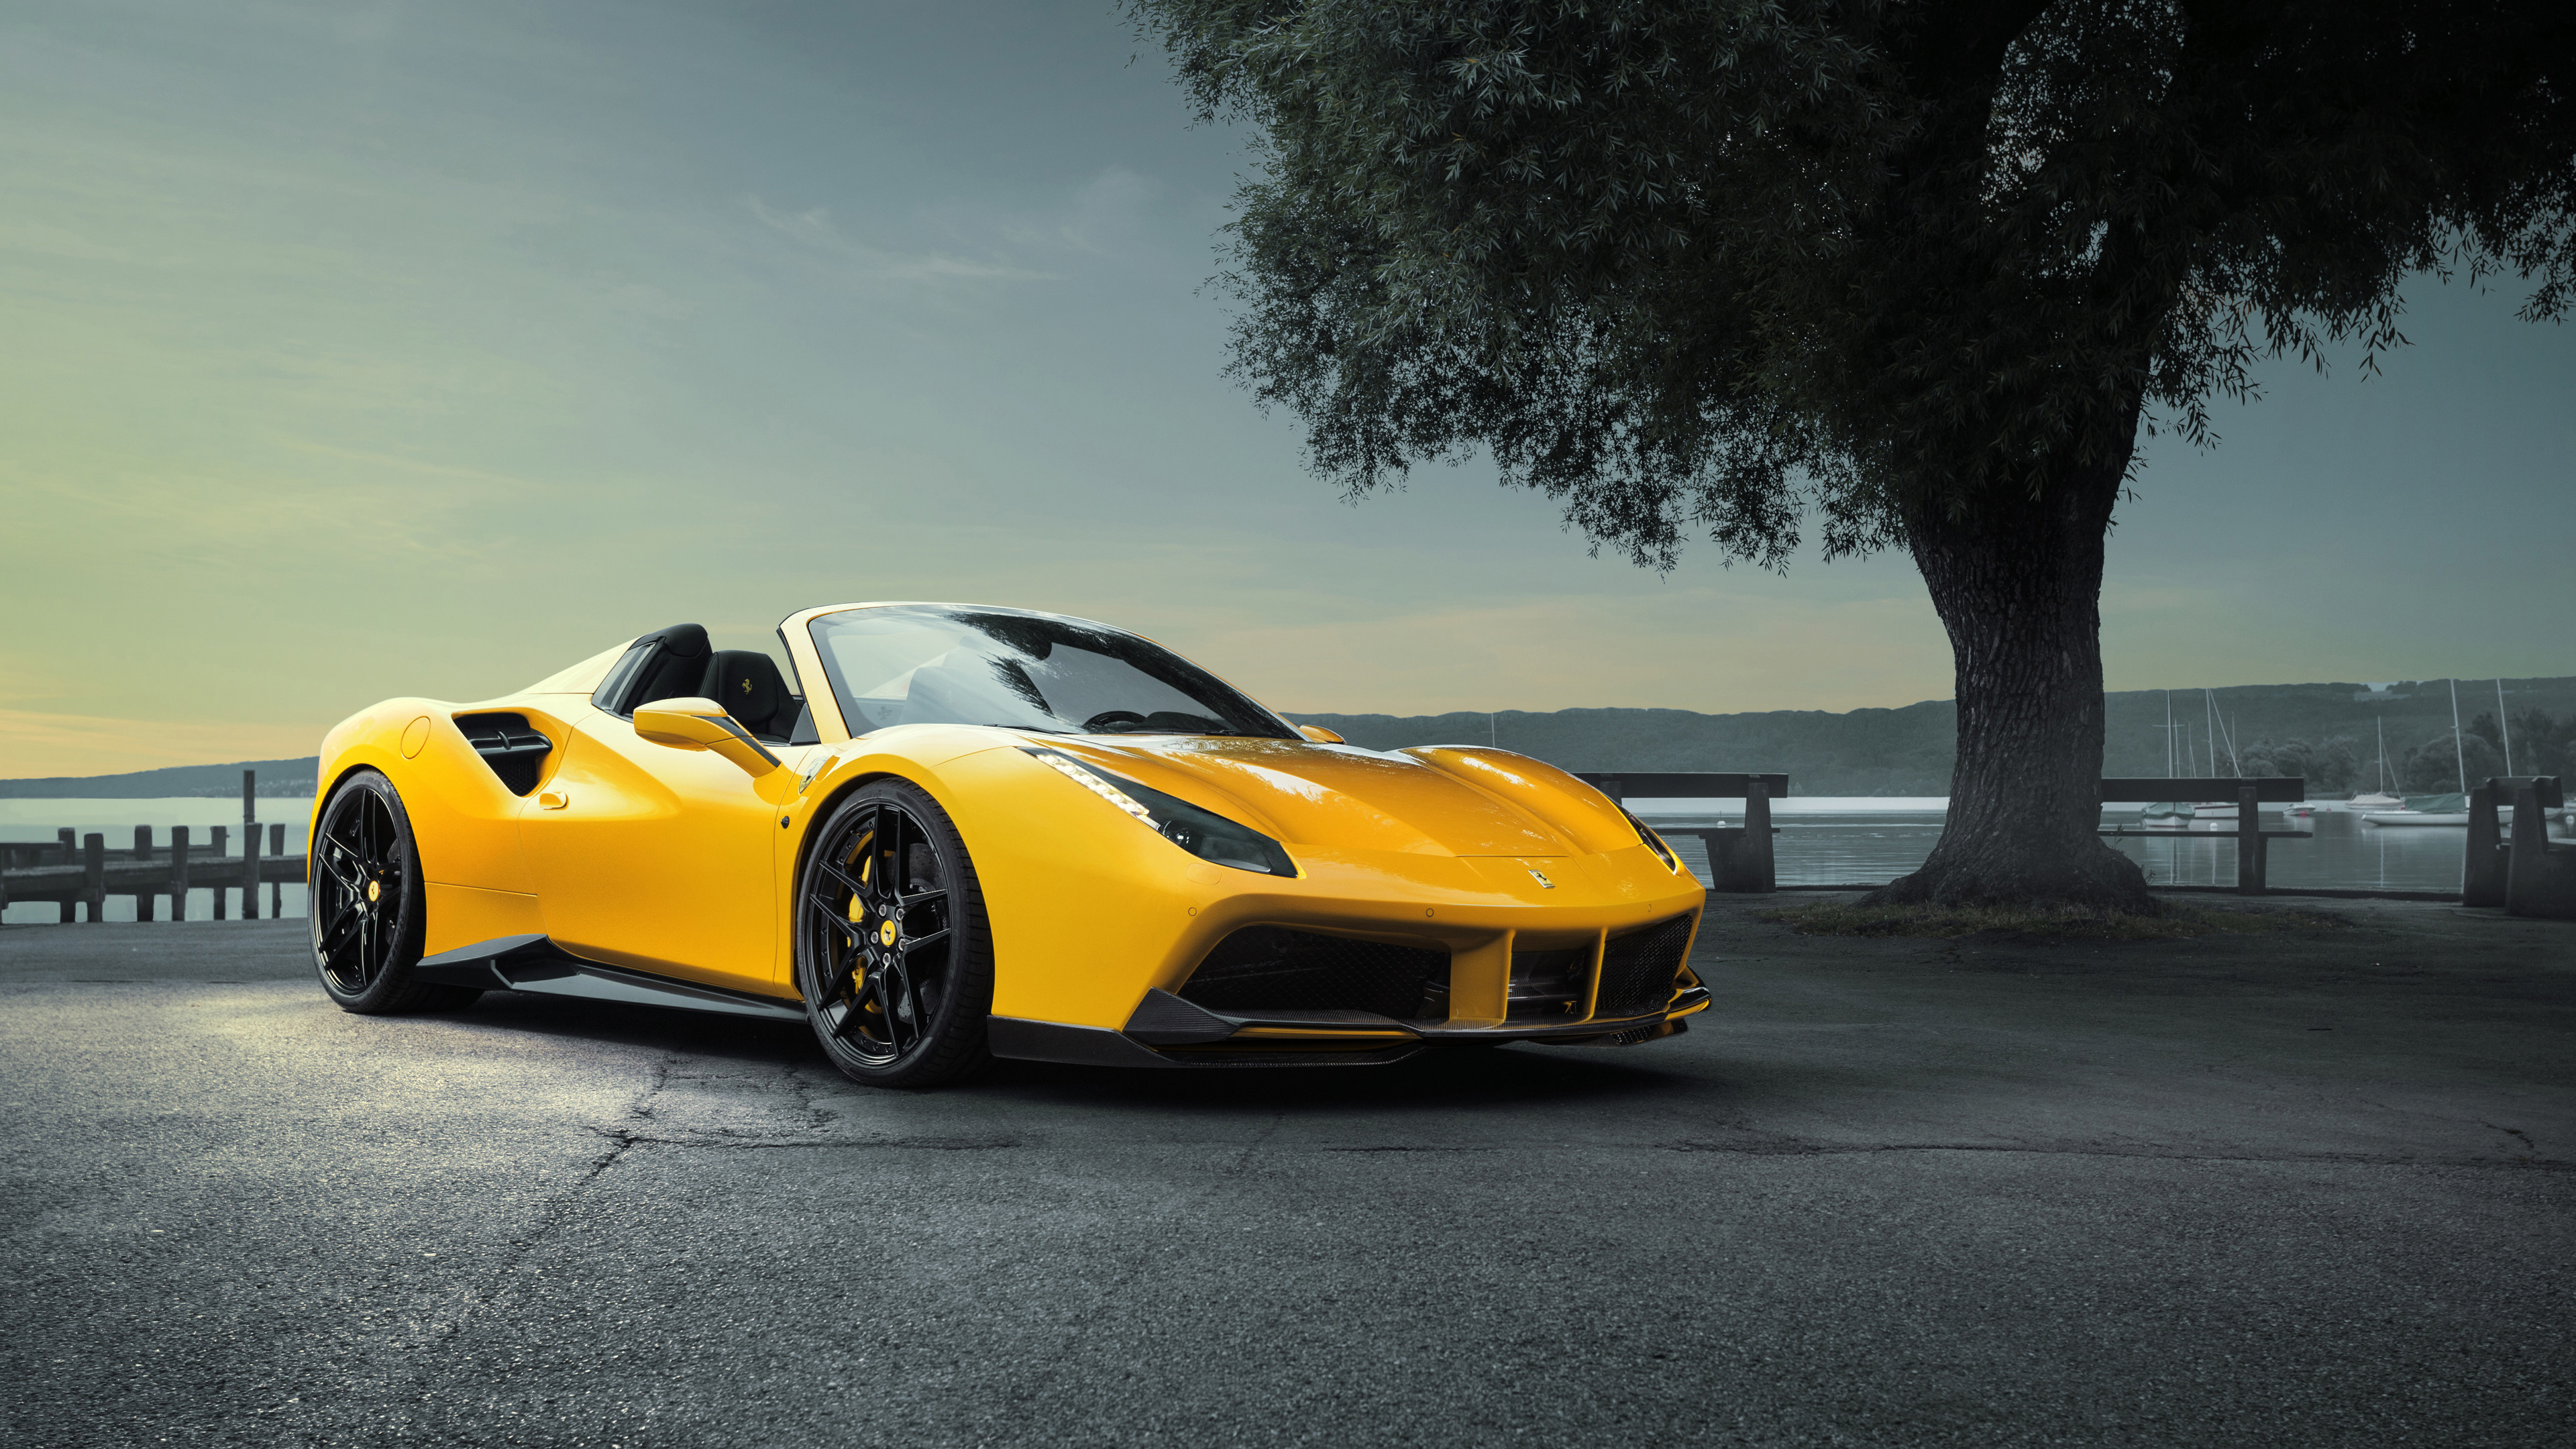 Ferrari 488 Pista Spider 1920x1080 Download Hd Wallpaper Wallpapertip